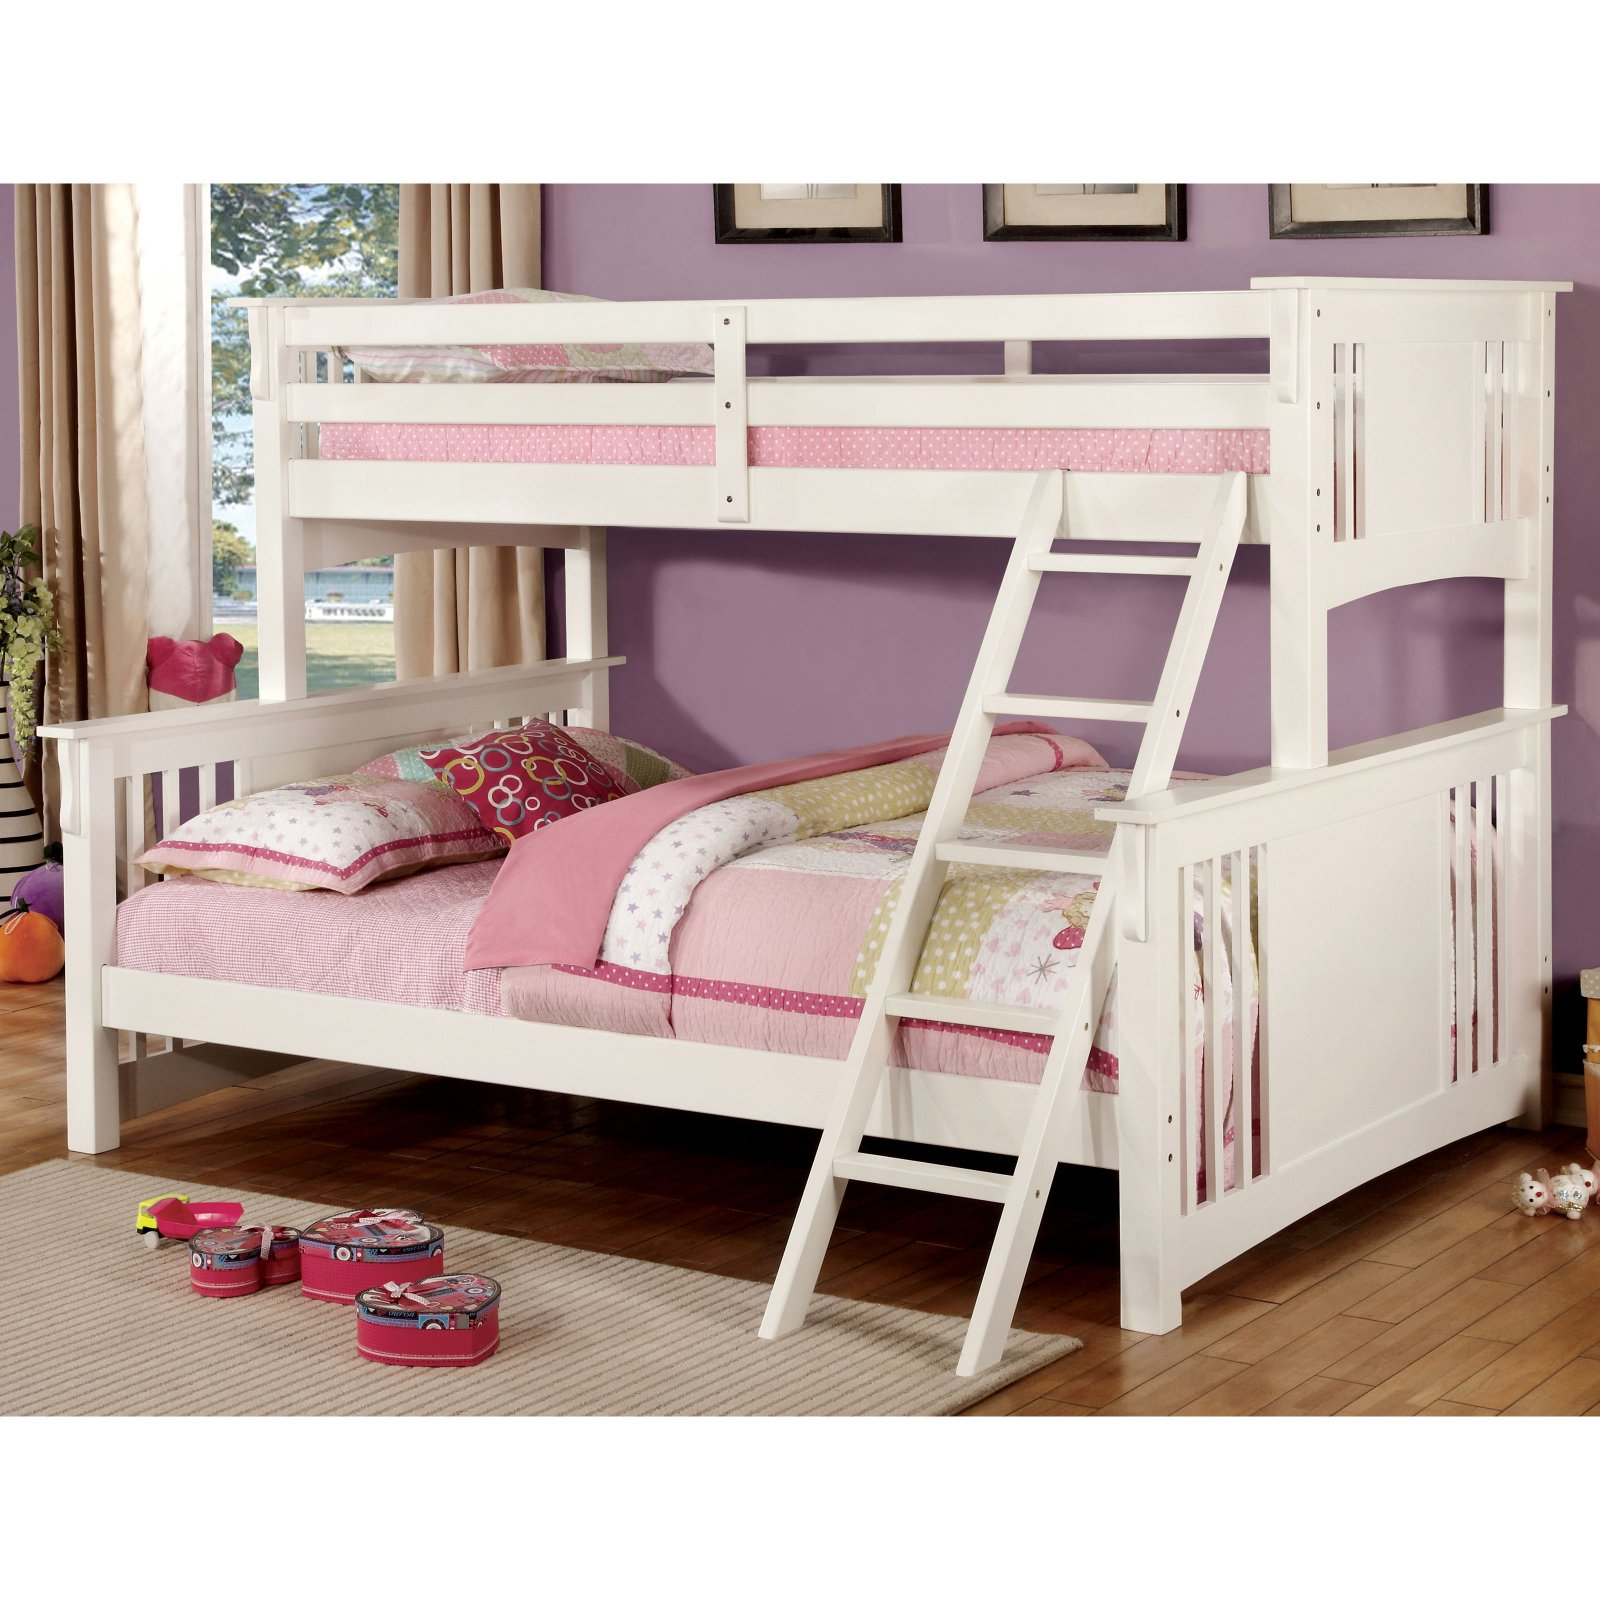 Charmant Furniture Of America Columbia Twin XL Over Queen Bunk Bed